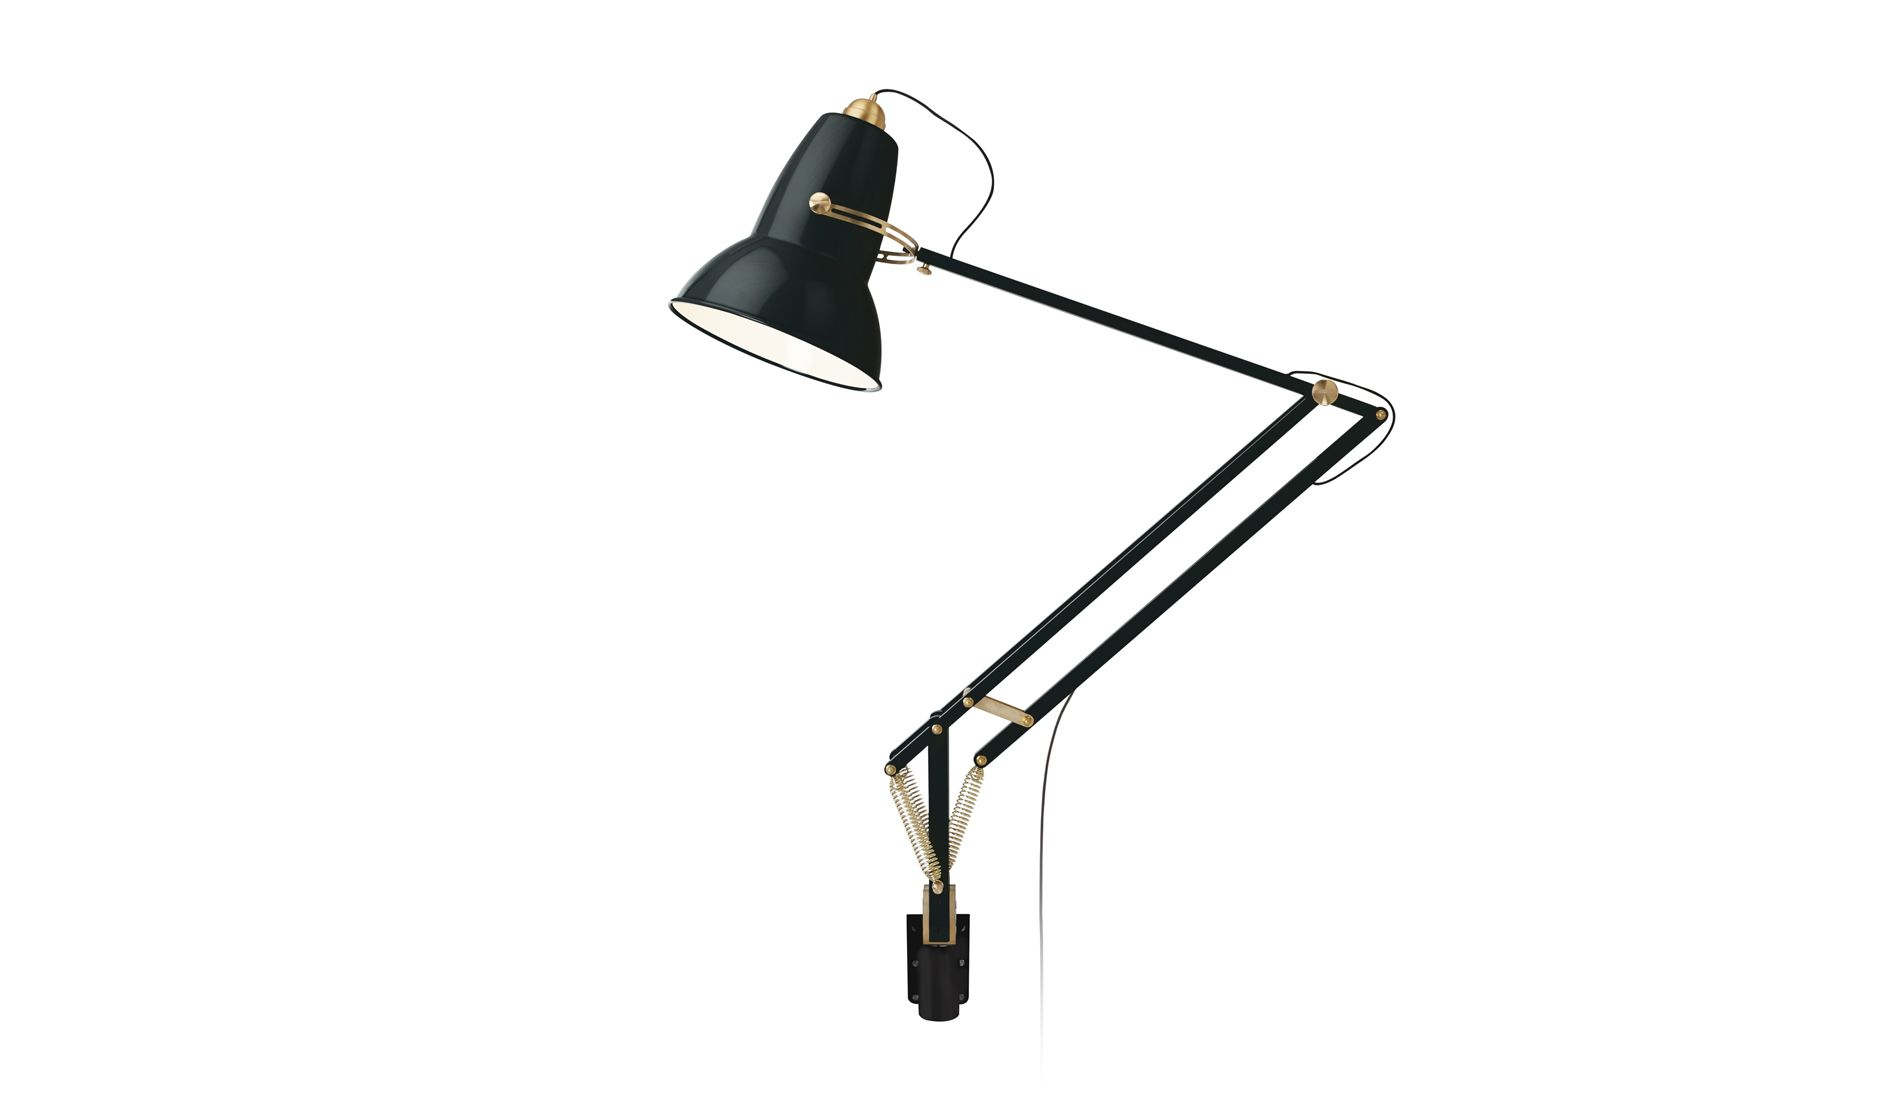 Nástěnná lampa Original 1227 Giant Messing Schieffer Black